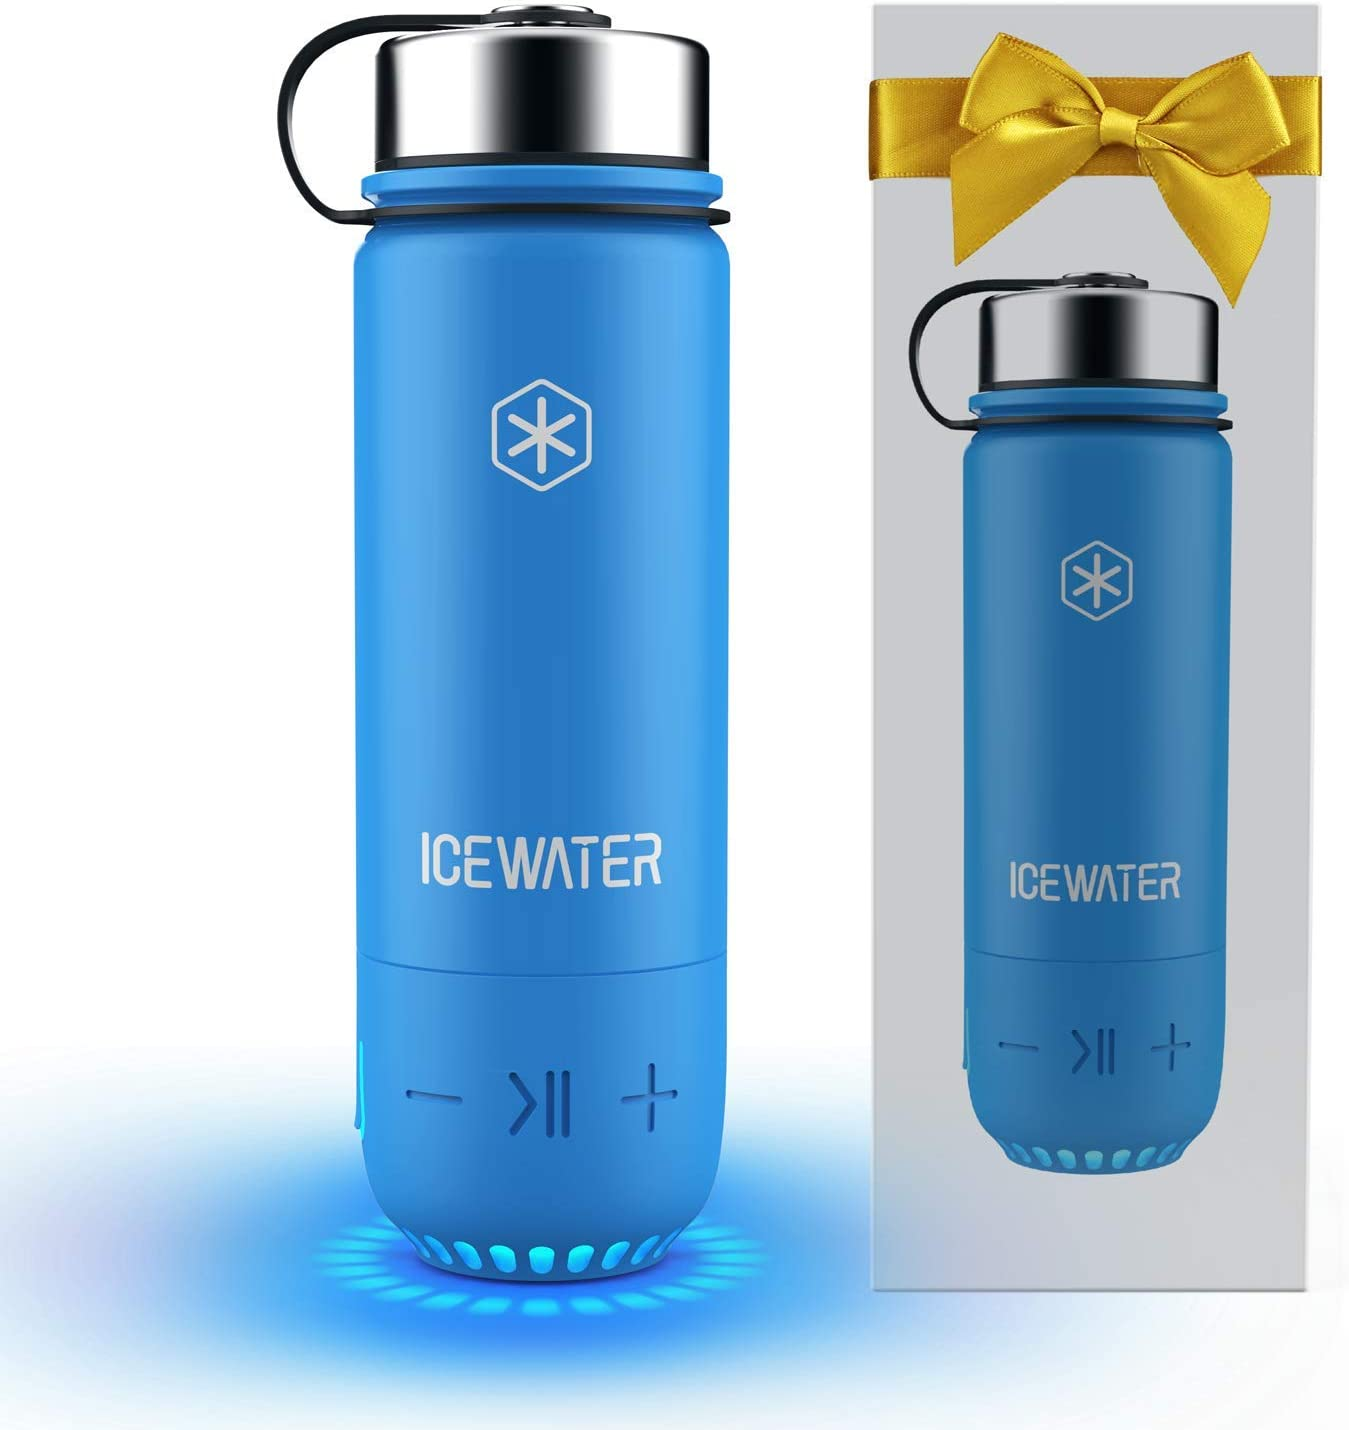 Icewater 3 In 1 Smart Stainless Steel Water Bottle Glows To Remind You To Stay Hydrated Bluetooth Speaker Dancing Lights 20 Oz Stay Hydrated And Enjoy Music Great Gift Blue Home Kitchen Amazon Com